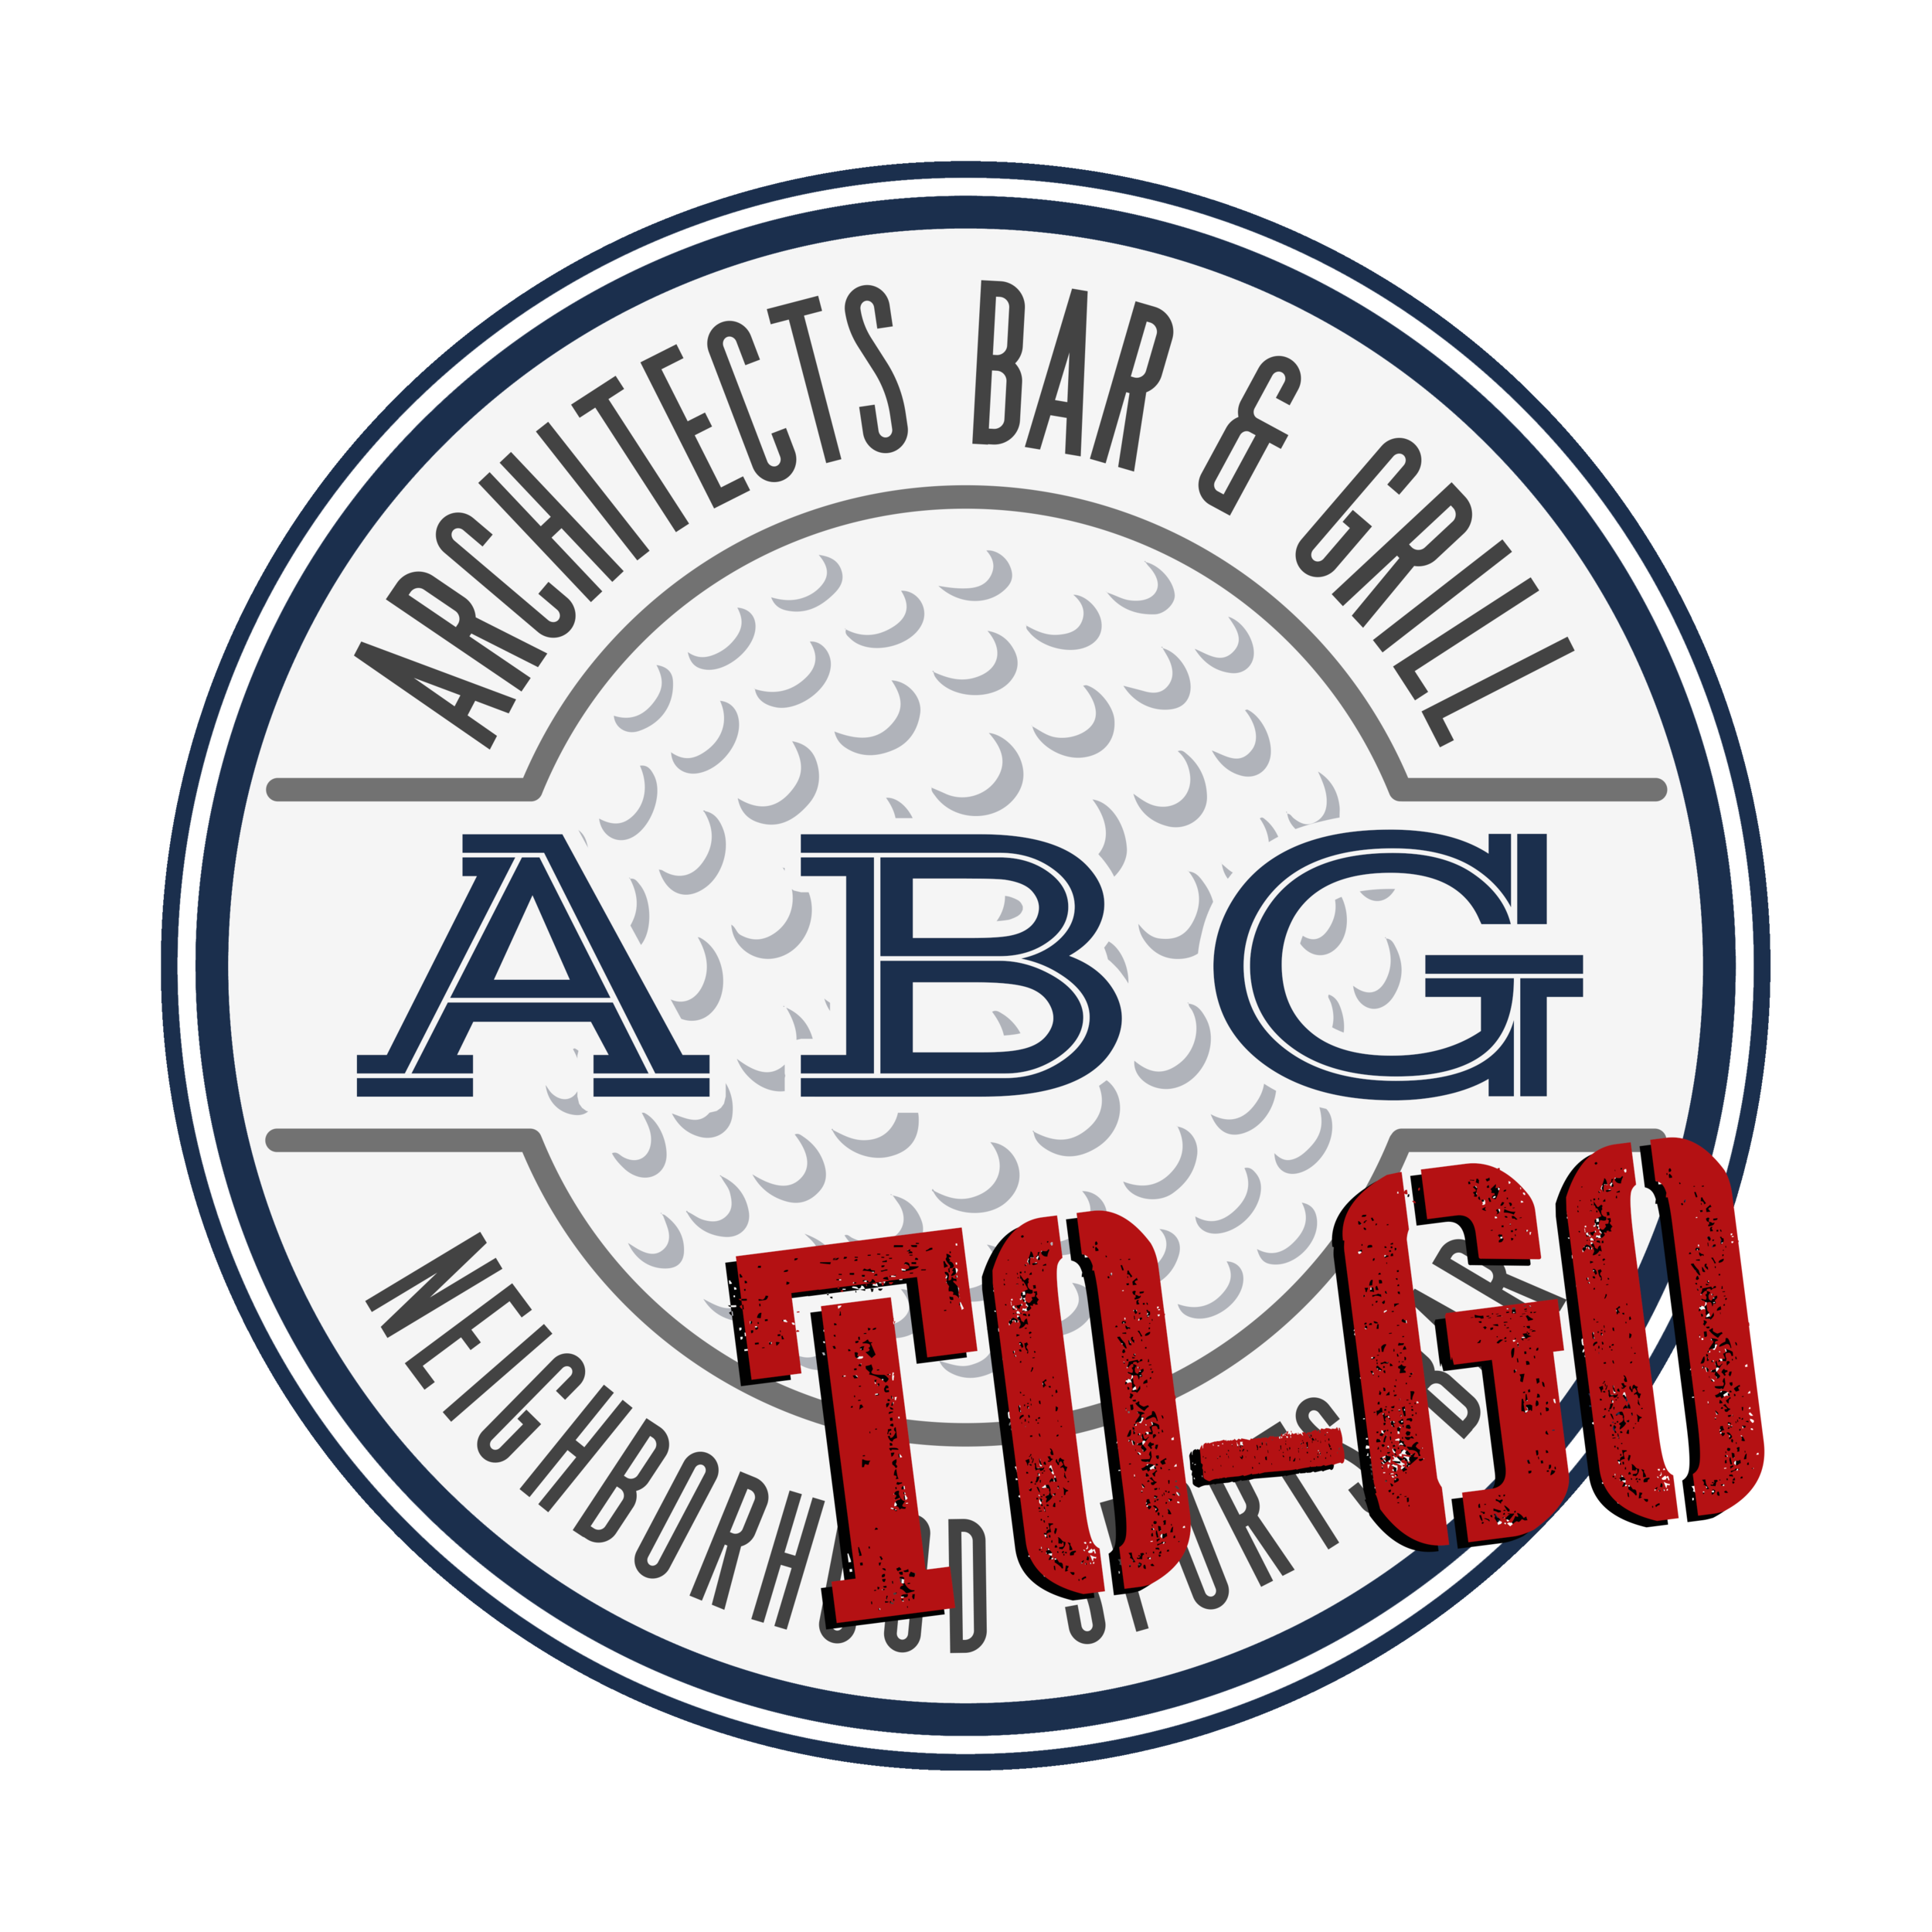 ArchitectsBarGrill ABG To-Go FINAL red.png